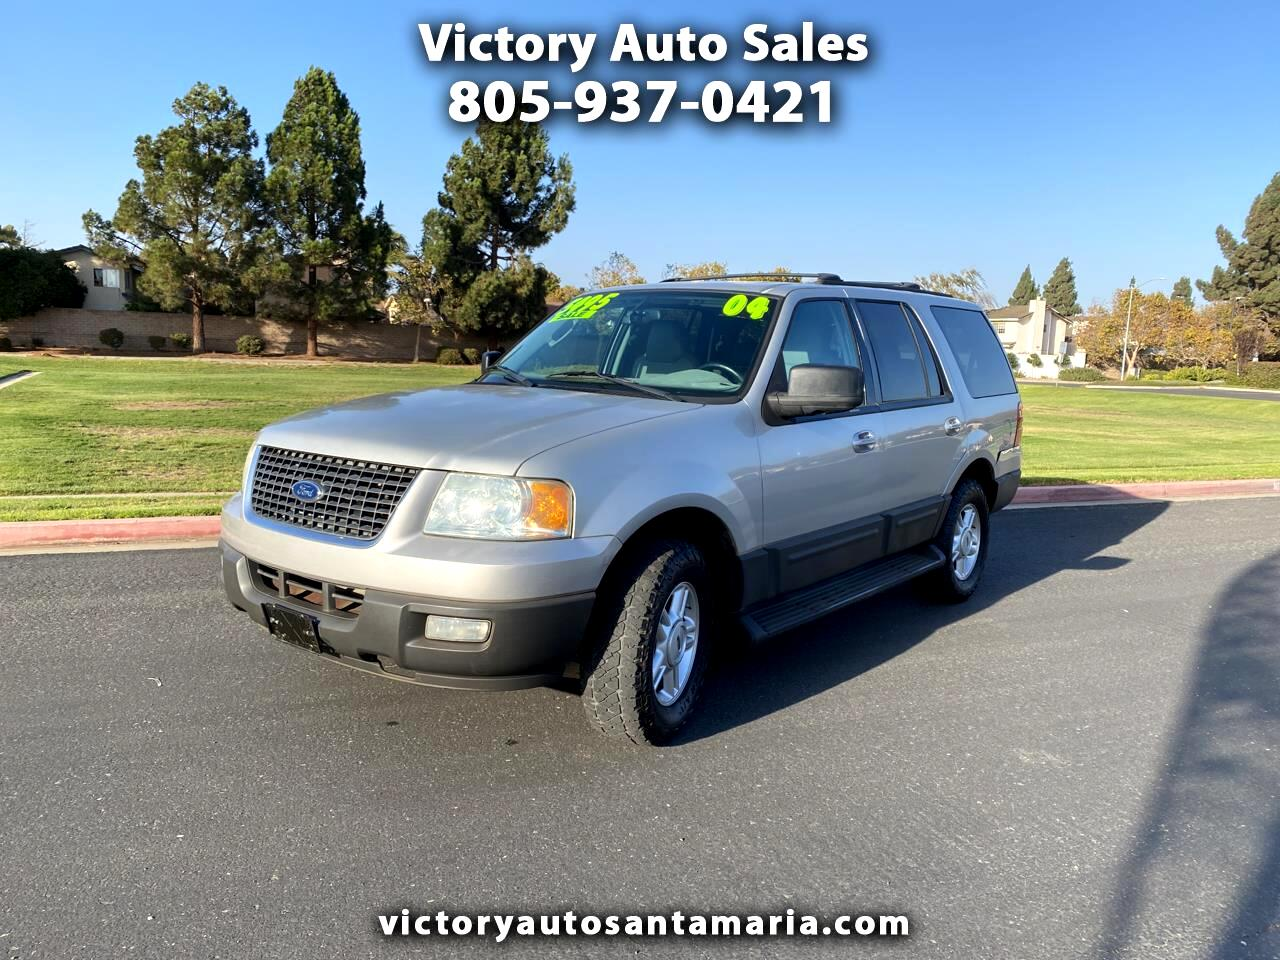 Ford Expedition XLT 5.4L 2WD 2004